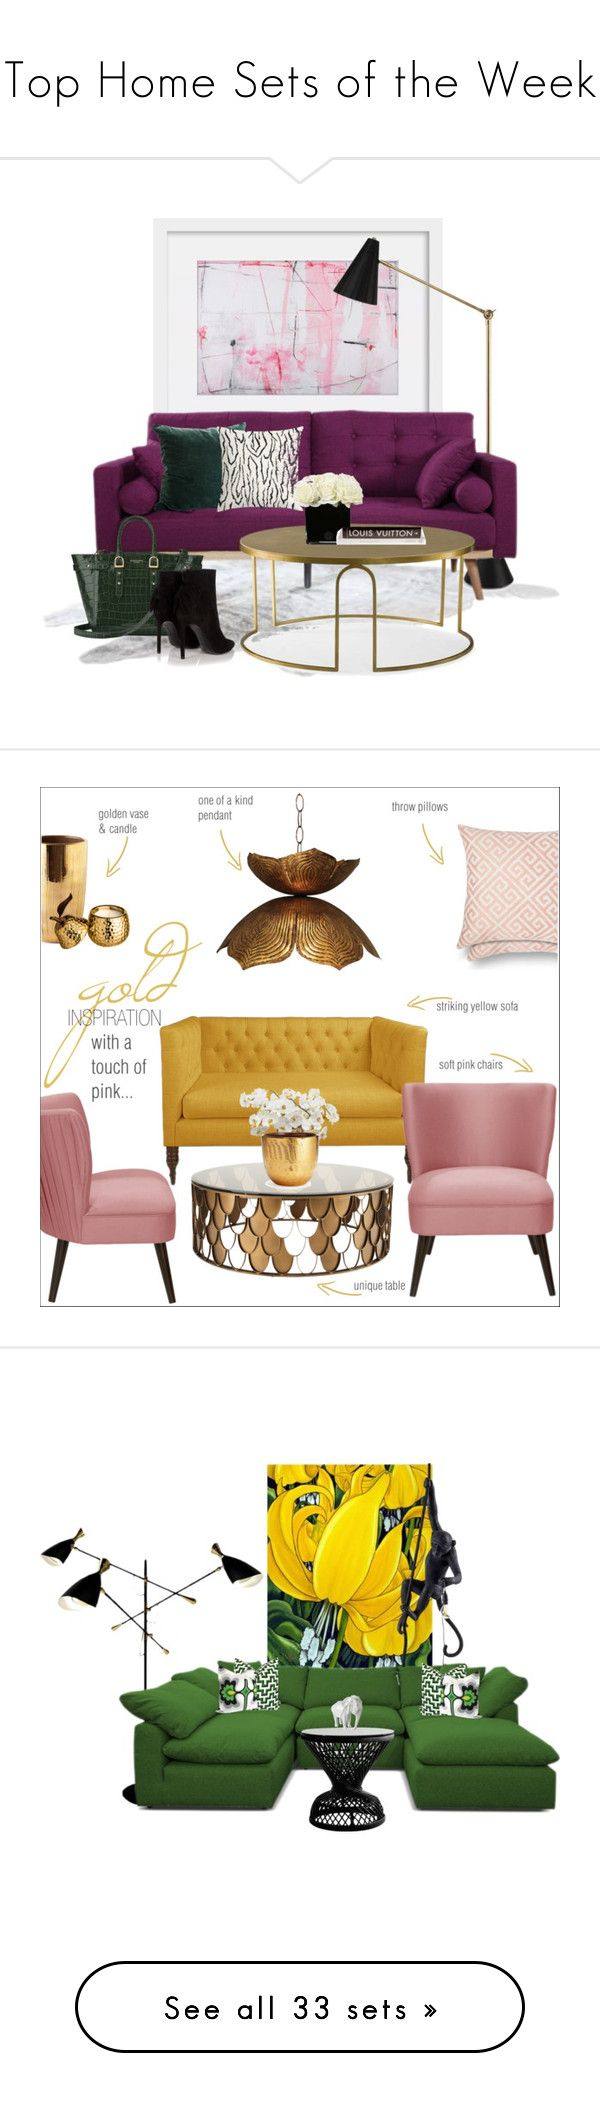 """""""Top Home Sets of the Week"""" by polyvore ❤ liked on Polyvore featuring interior, interiors, interior design, home, home decor, interior decorating, Jonathan Adler, Andrew Martin, Hervé Gambs and Aspinal of London"""